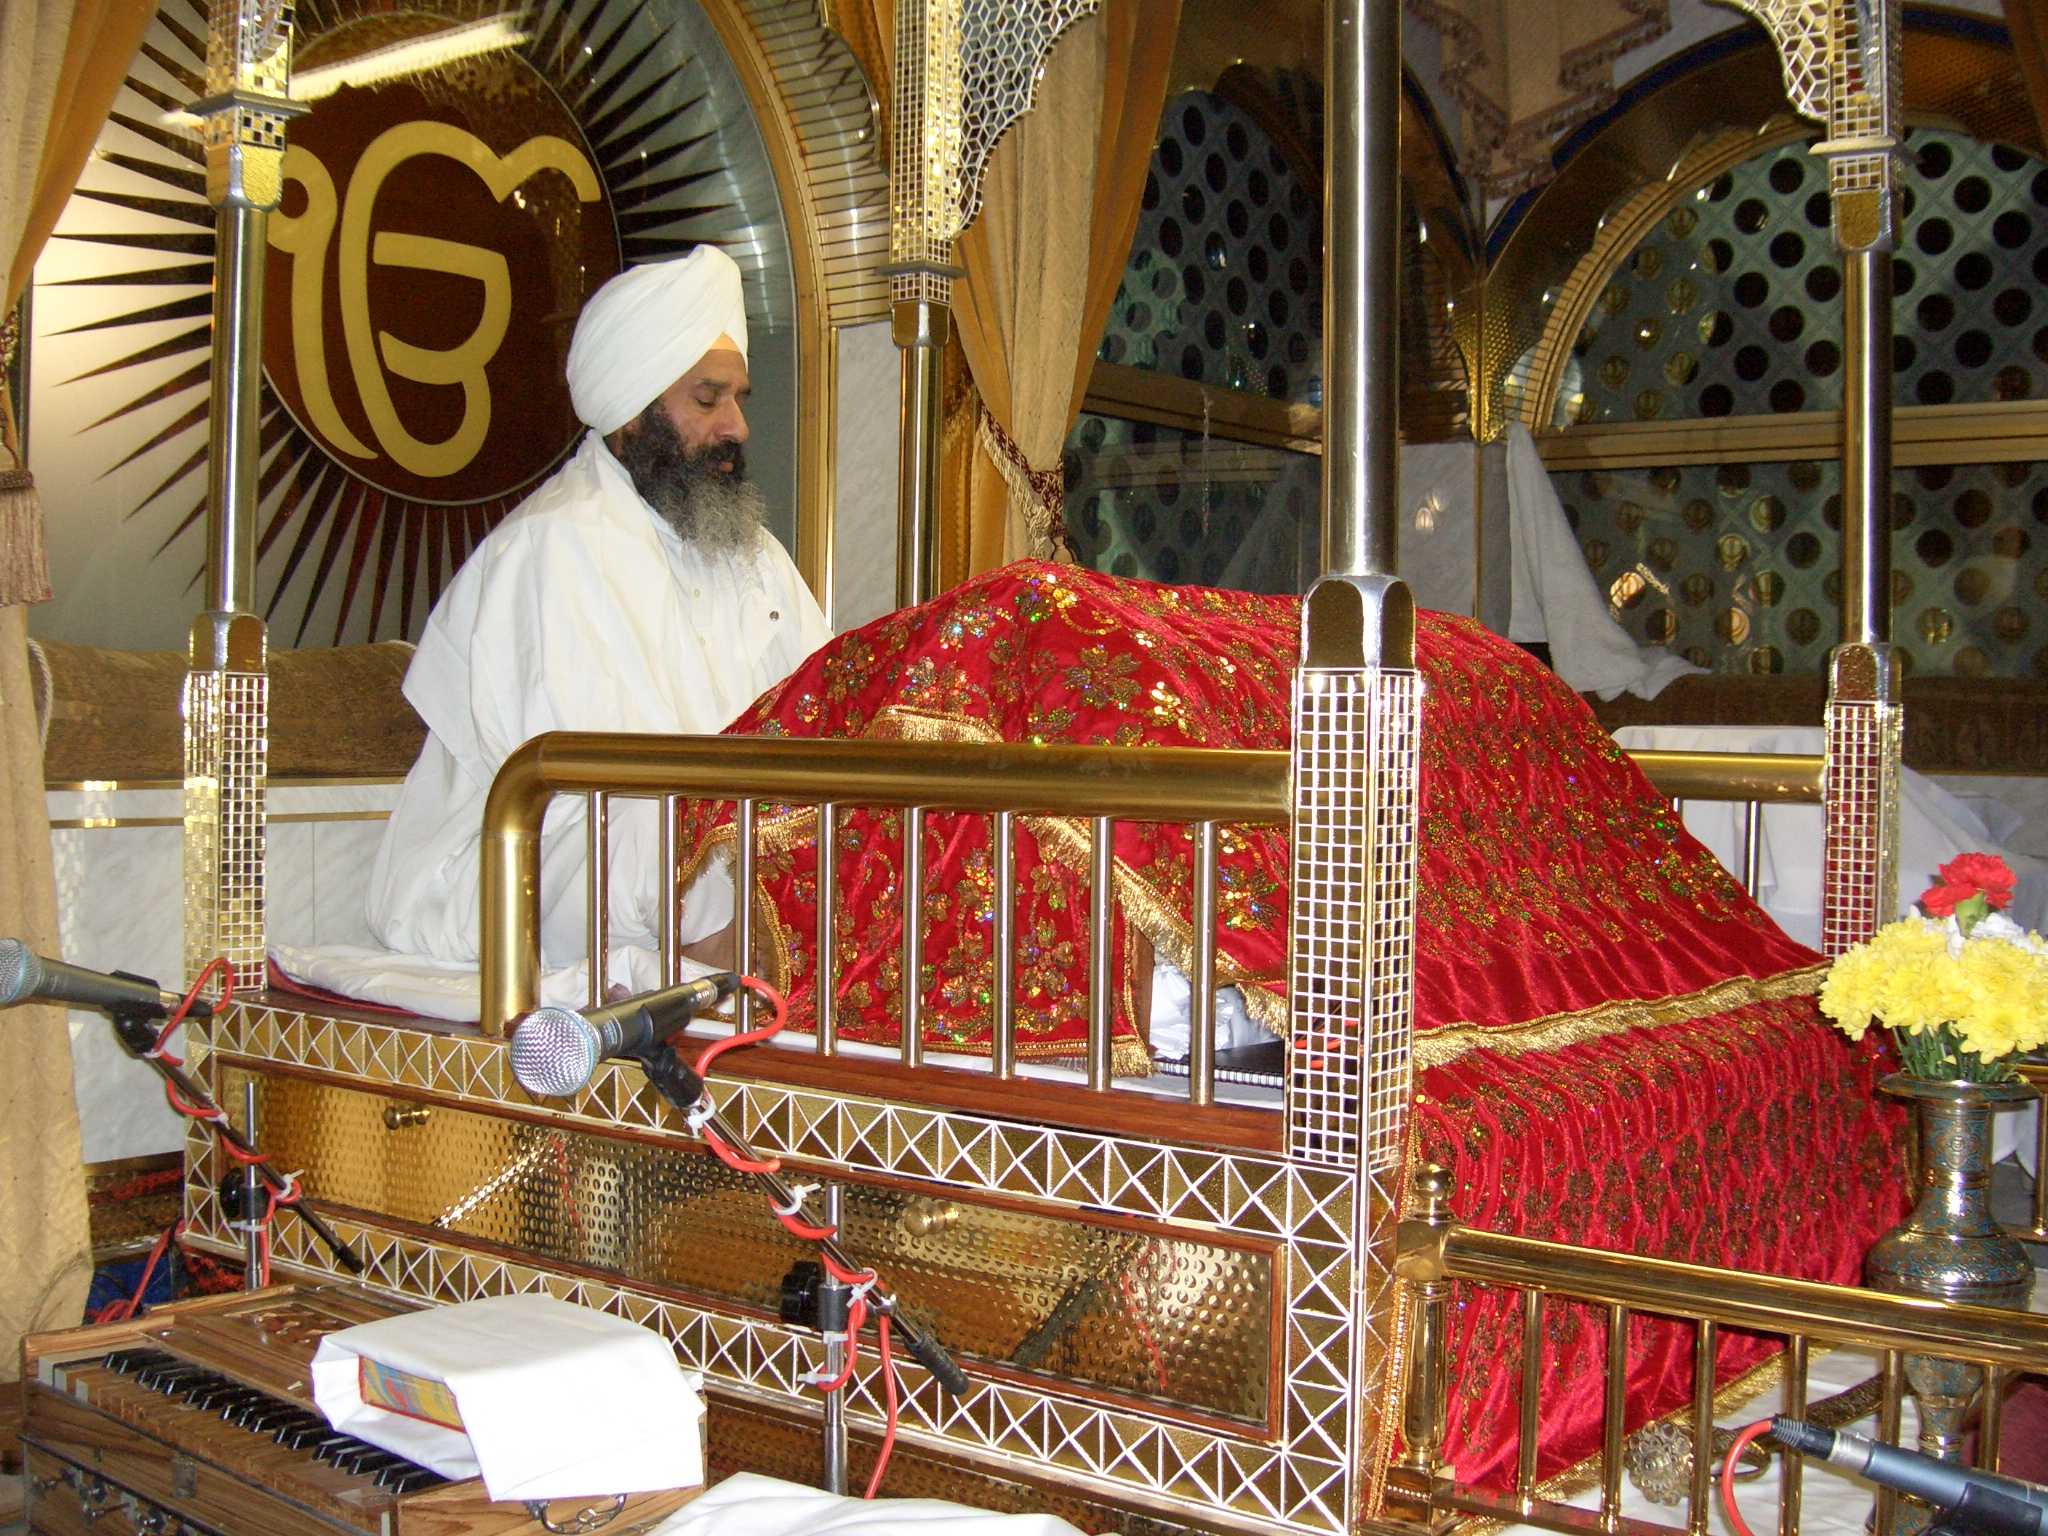 File:Sri Guru Granth Sahib.jpg - Wikipedia, the free encyclopedia